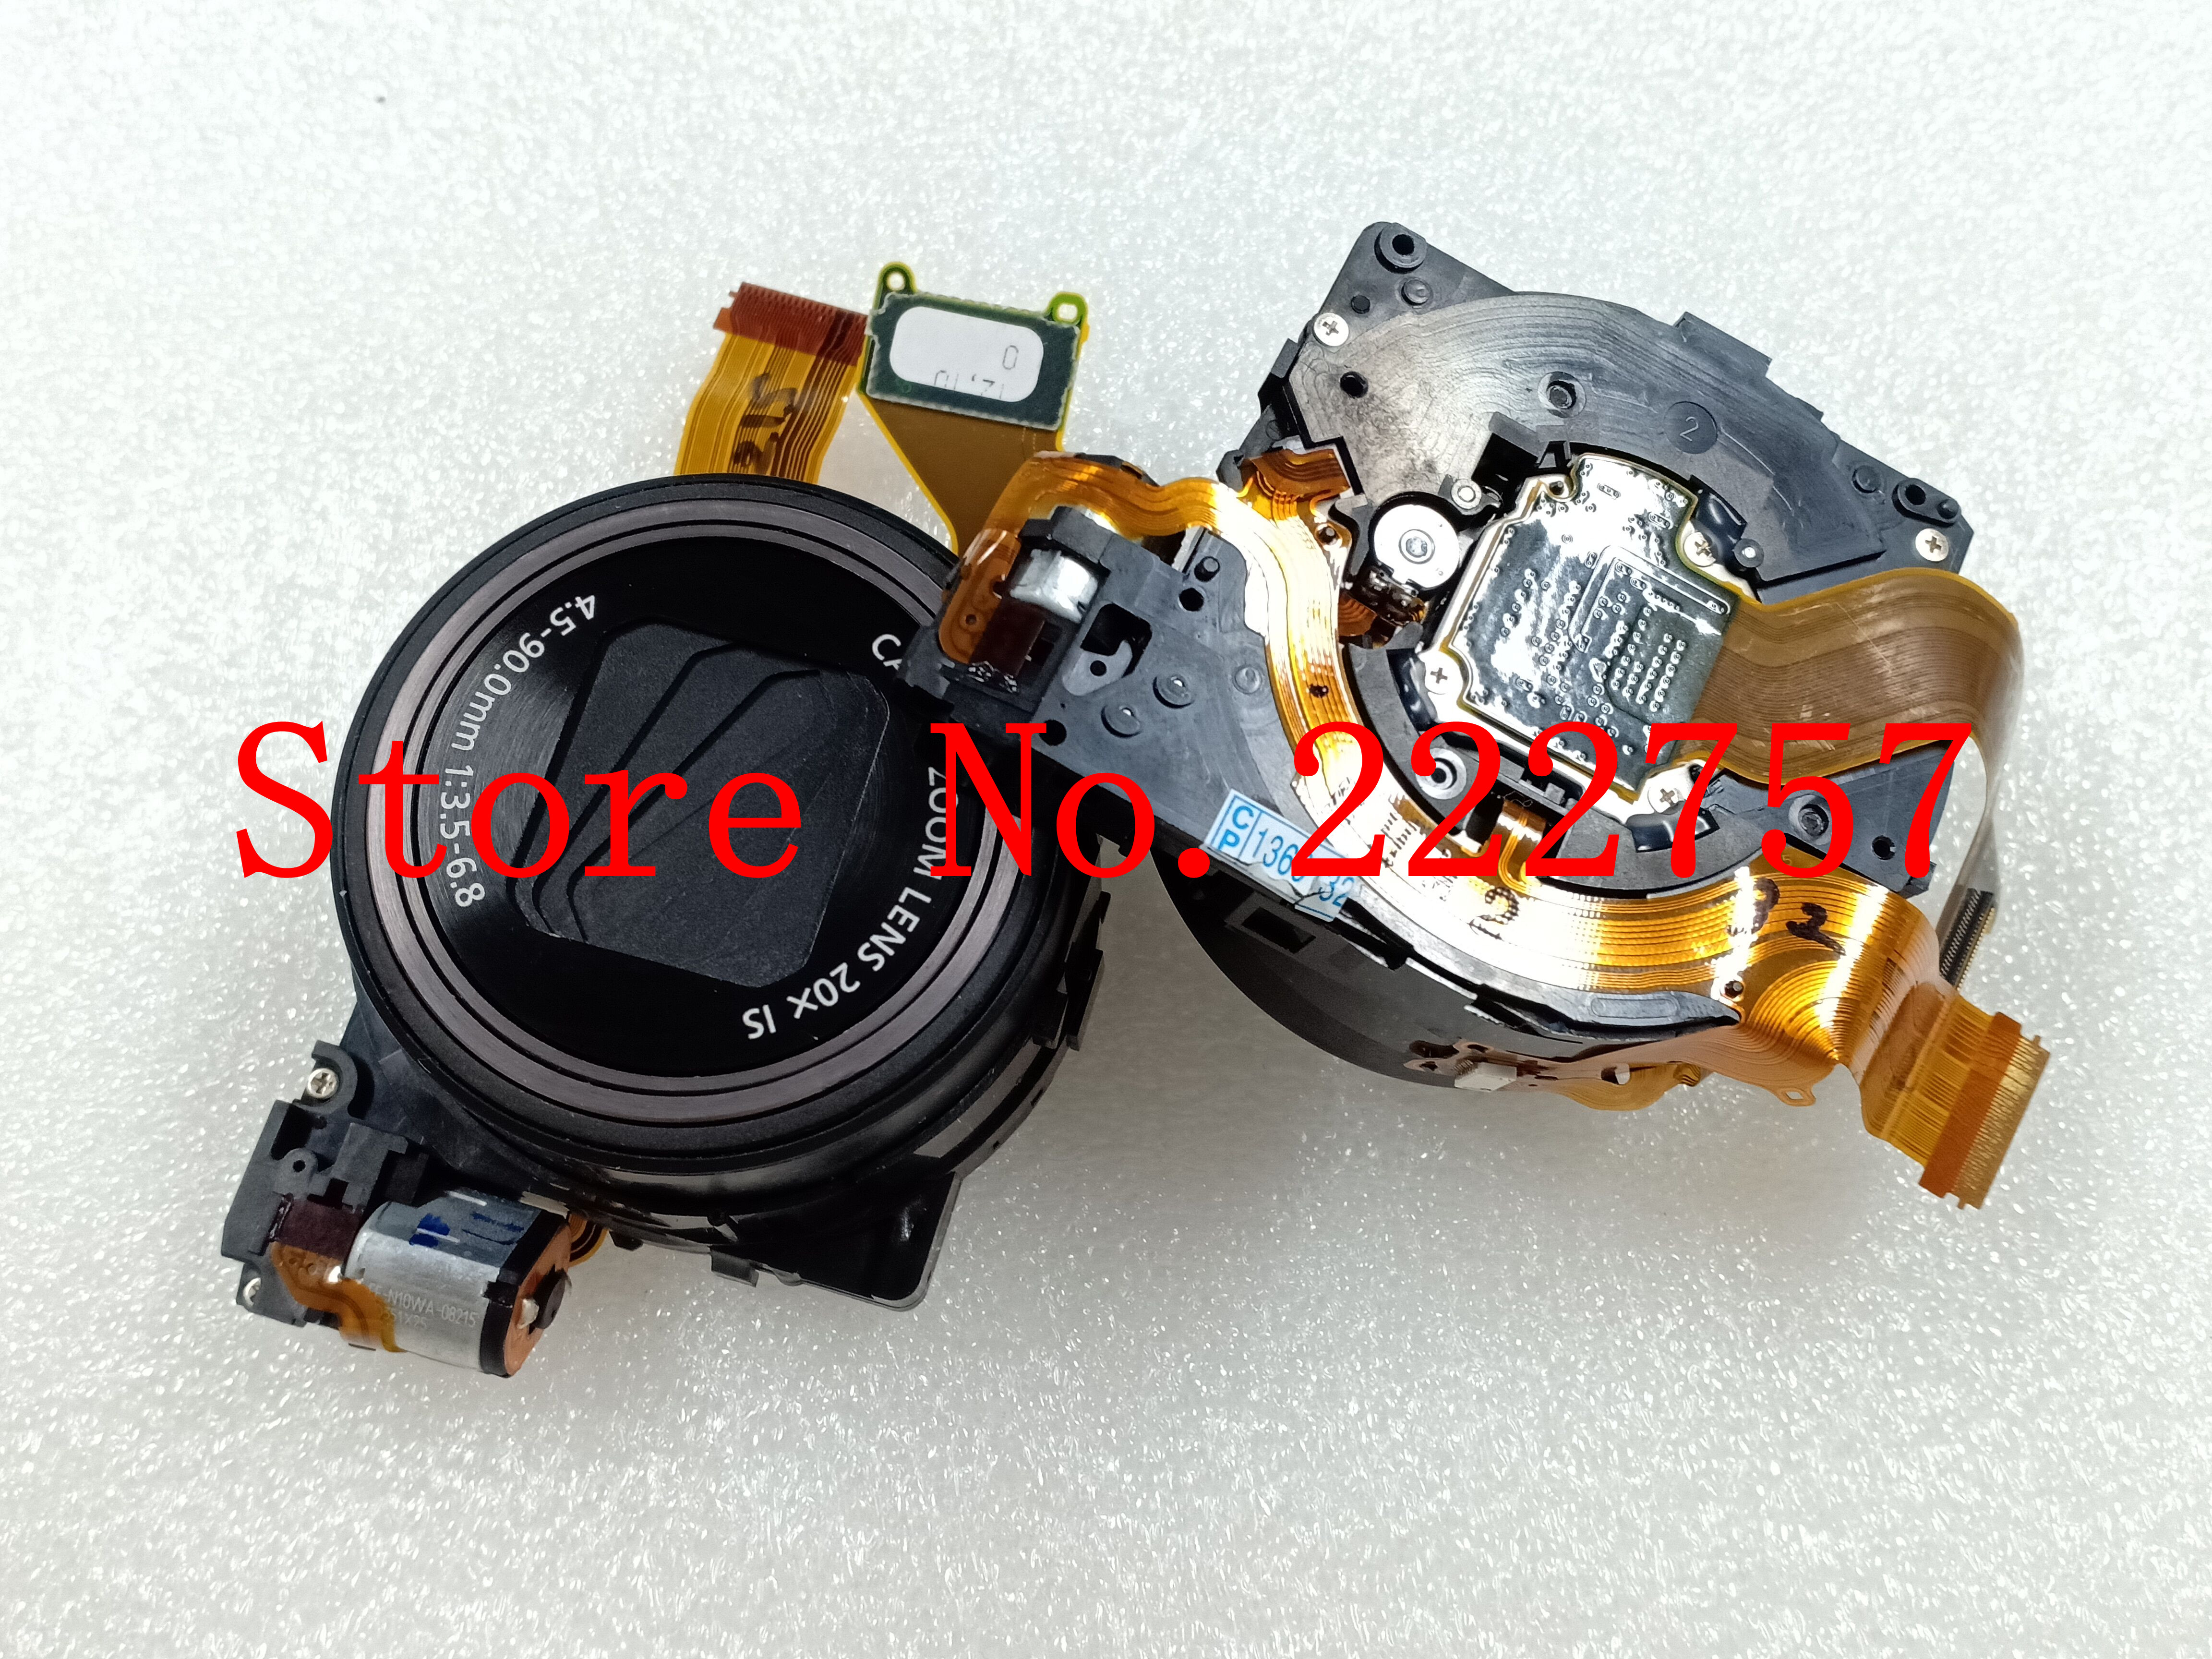 95%NEW Lens Zoom Unit For CANON FOR PowerShot SX240 SX260 HS Digital Camera Repair Part + CCD|united| |  - title=